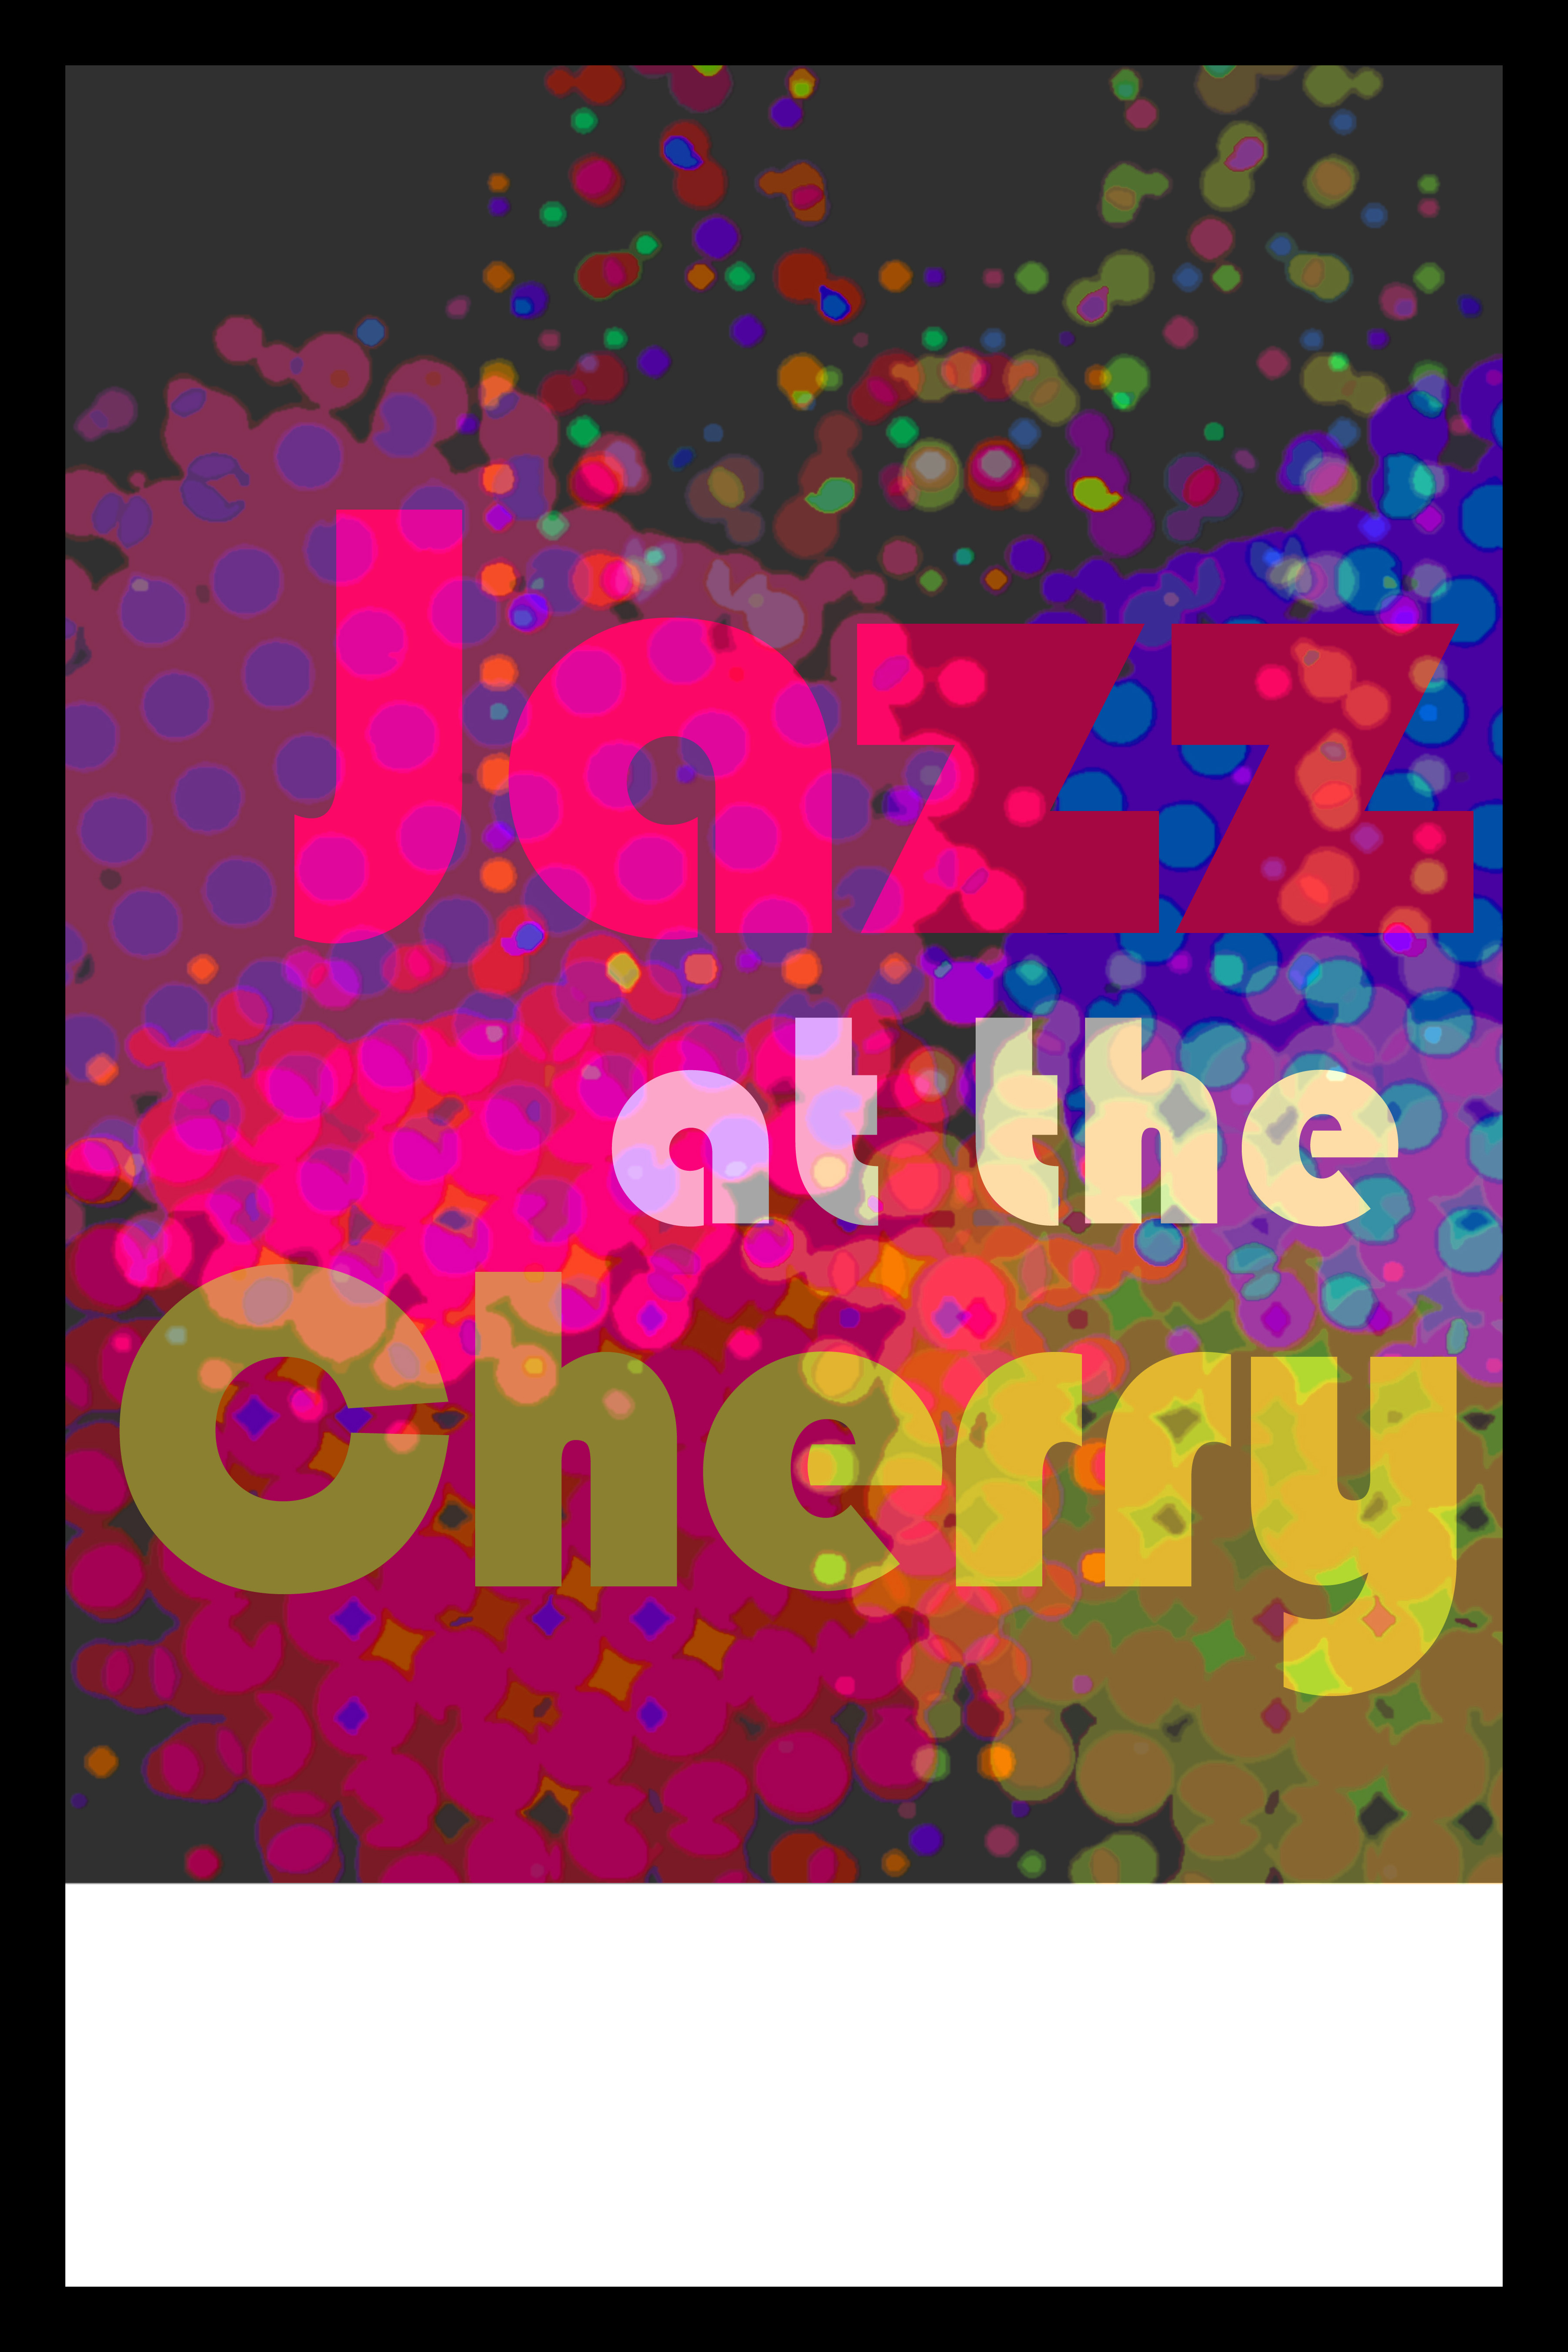 Jazz at the cherry with border